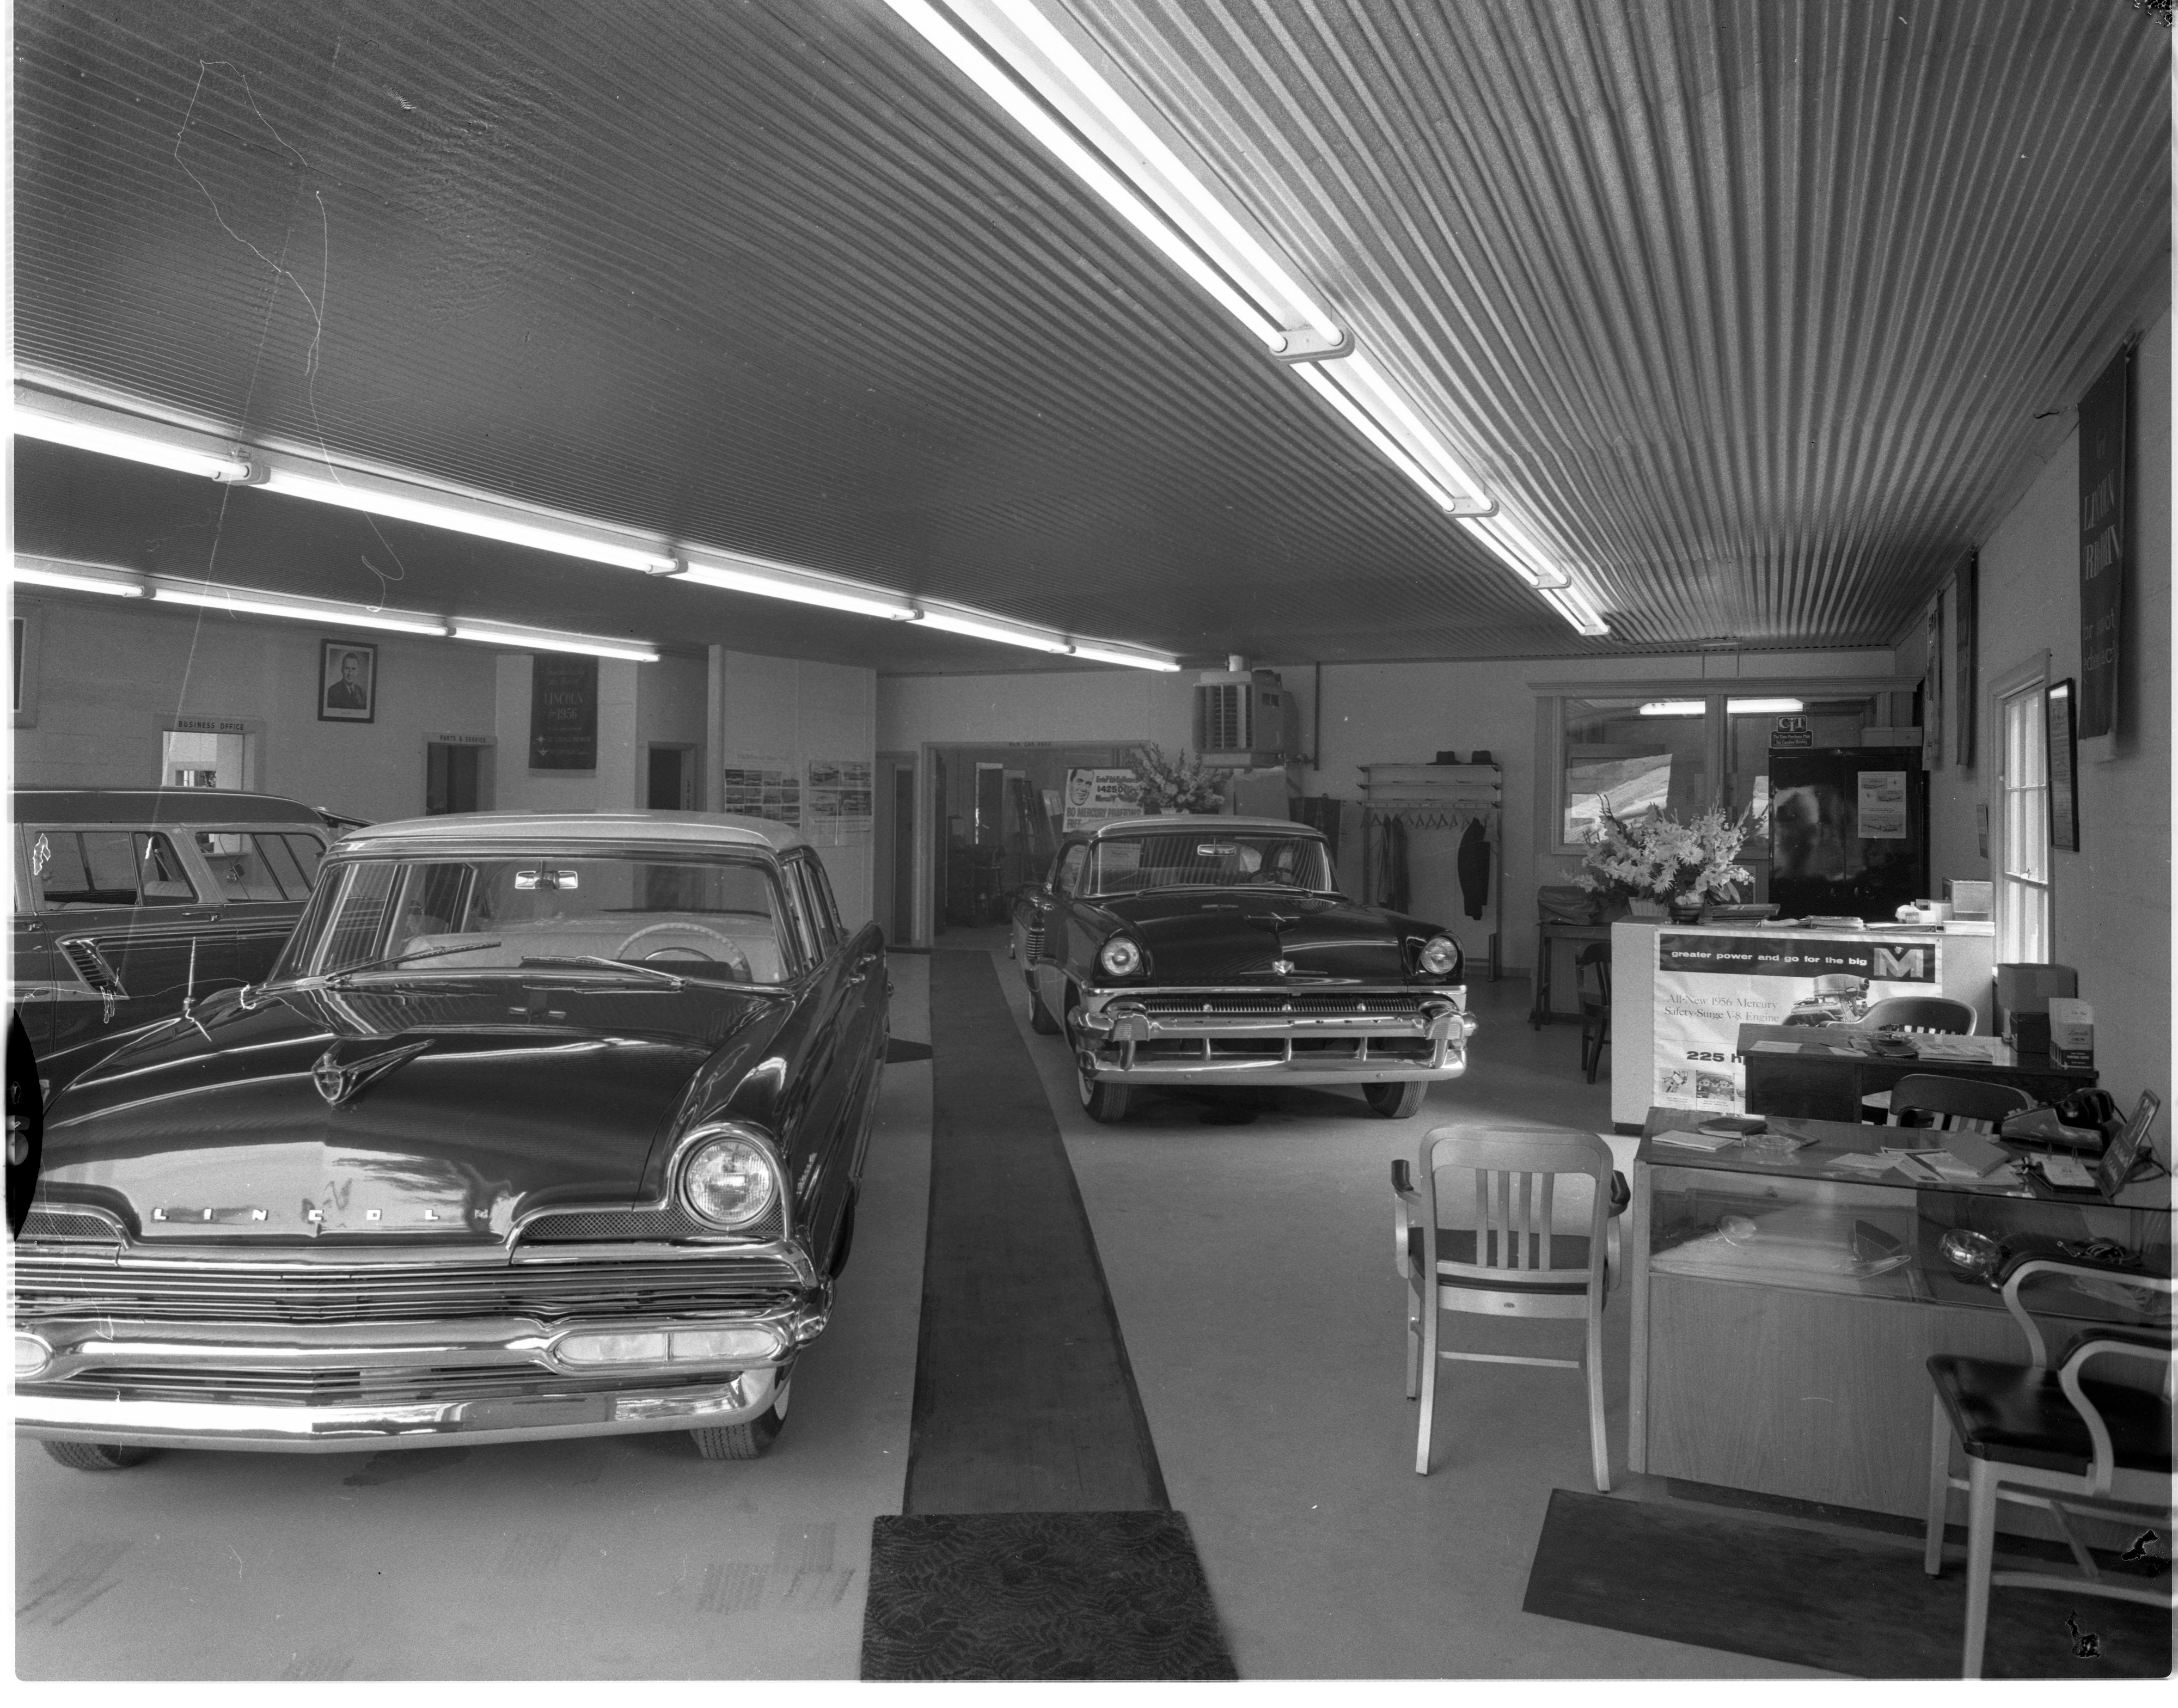 of hr in report the lincoln westmont final daily new market area dealership for great lakes and dealer mercury lincolnnavigatorconcept was sales per ogden chicago